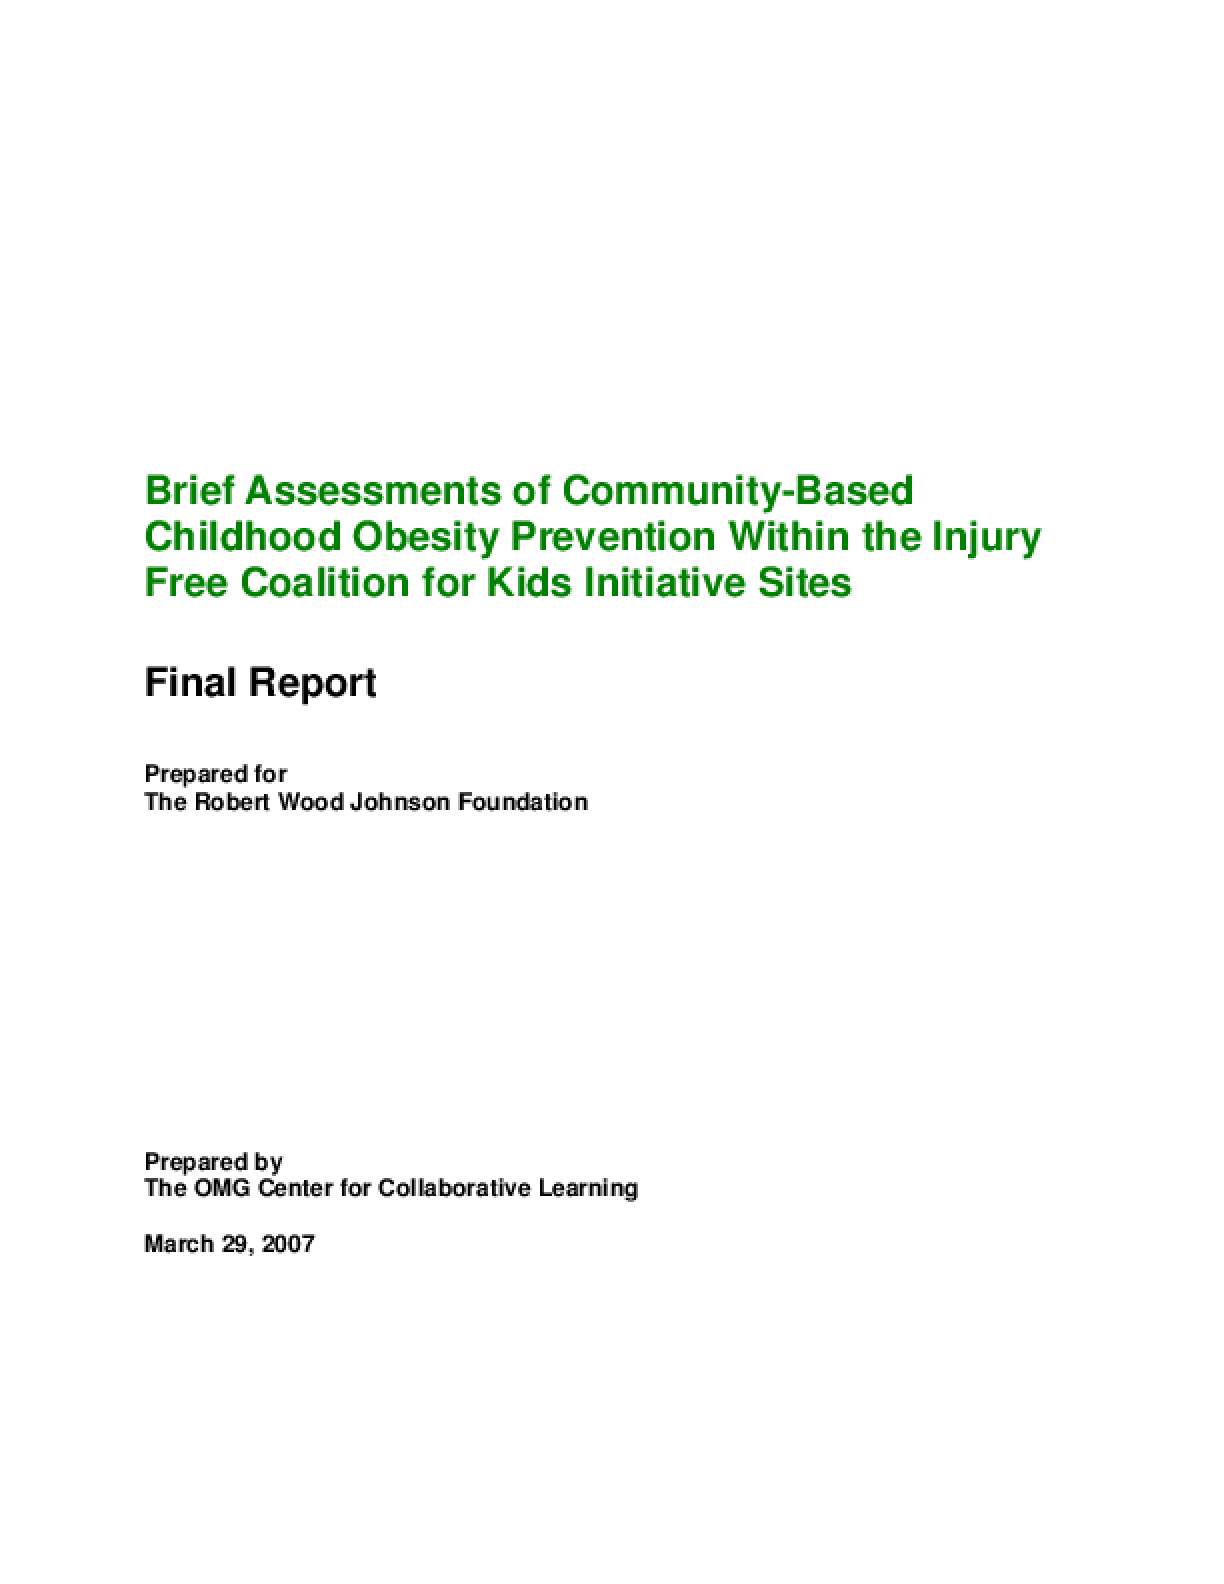 Brief Assessments of Community-Based Childhood Obesity Prevention Within the Injury Free Coalition for Kids Initiative Sites